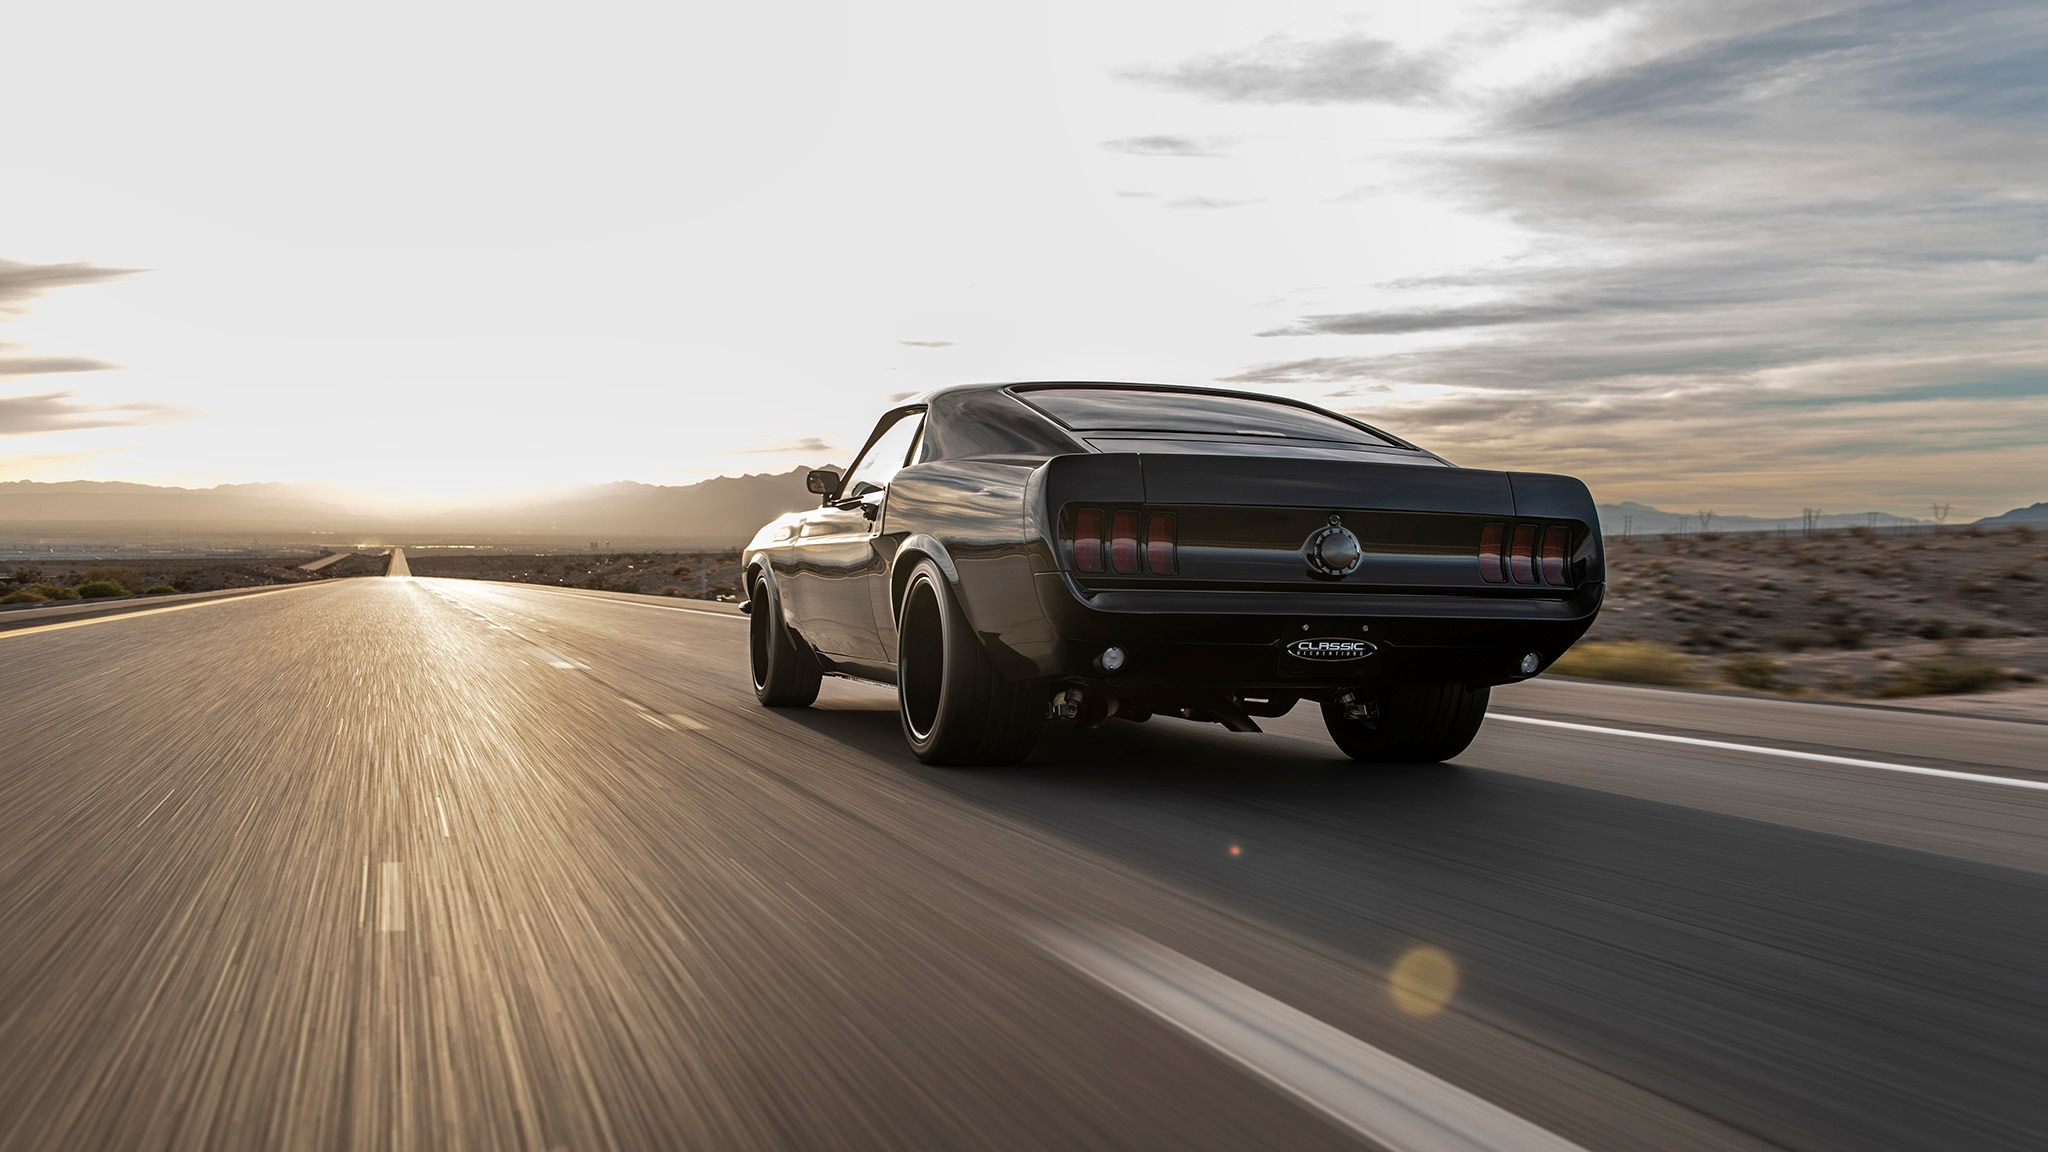 1969 Ford Mustang Boss 429 Continuation Car Is Boss